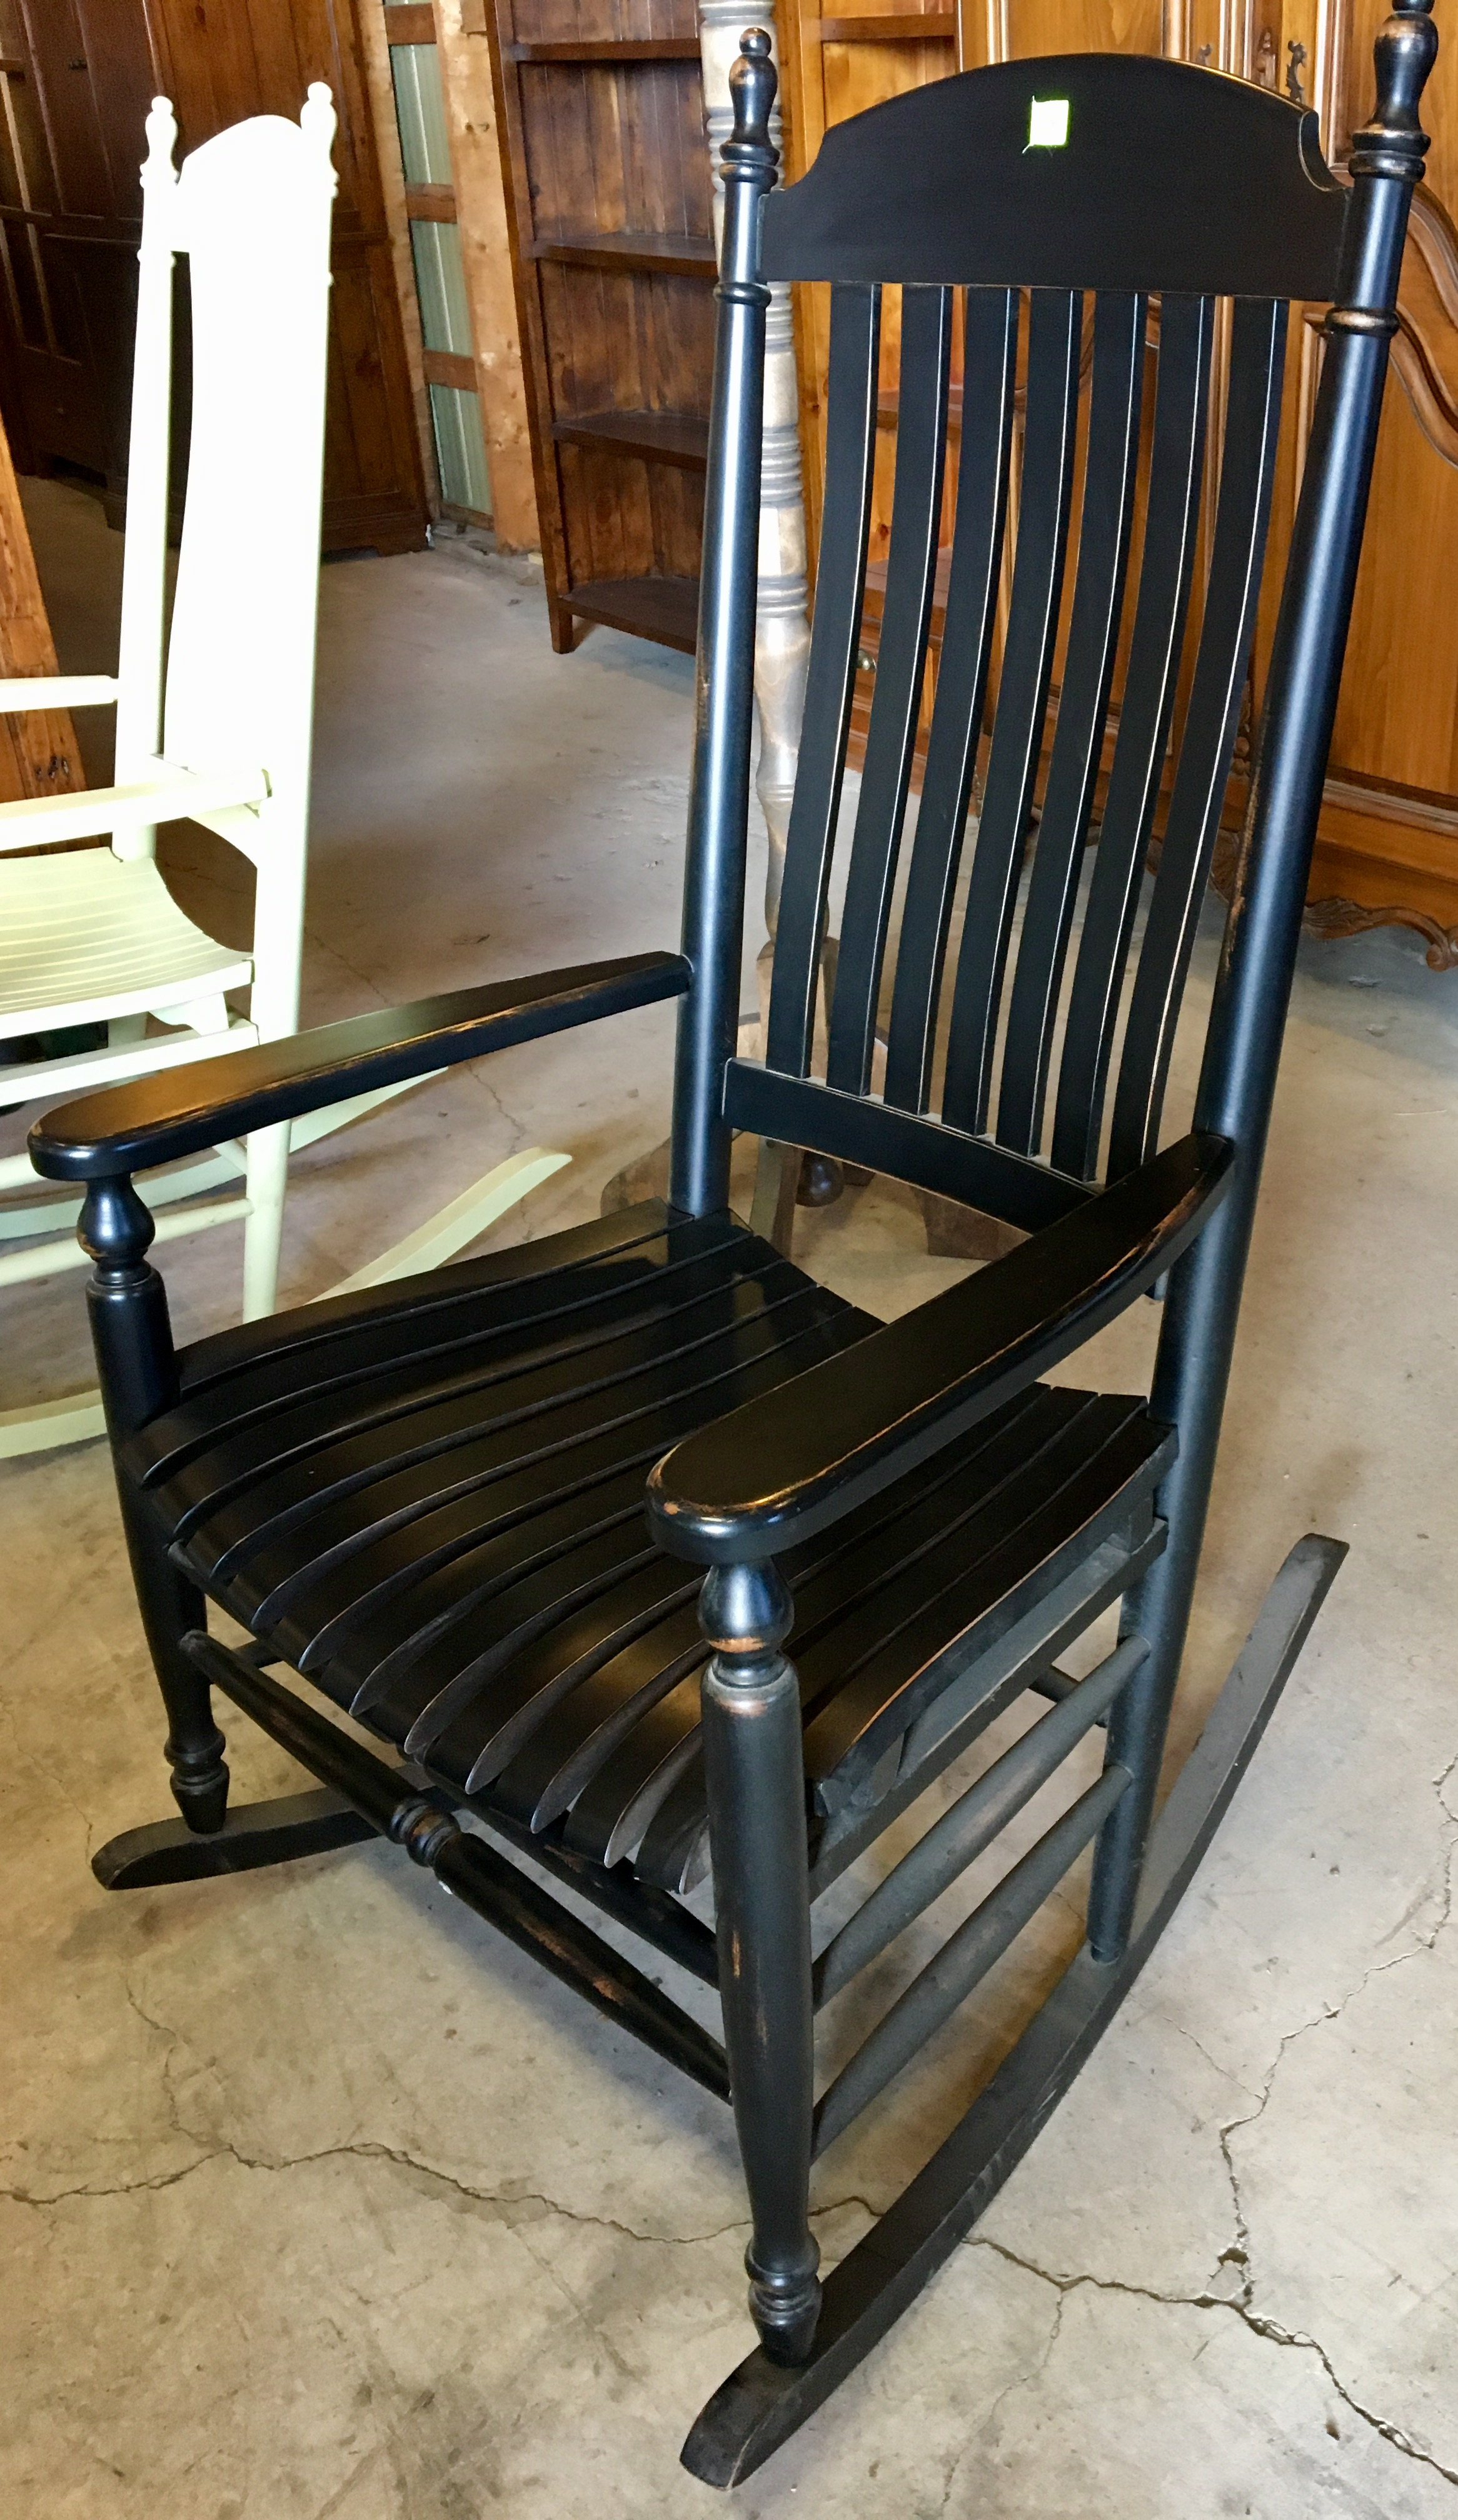 Comfortable Rocking Chair Antique Reproduction Rocking Chair Very Solid And Comfortable